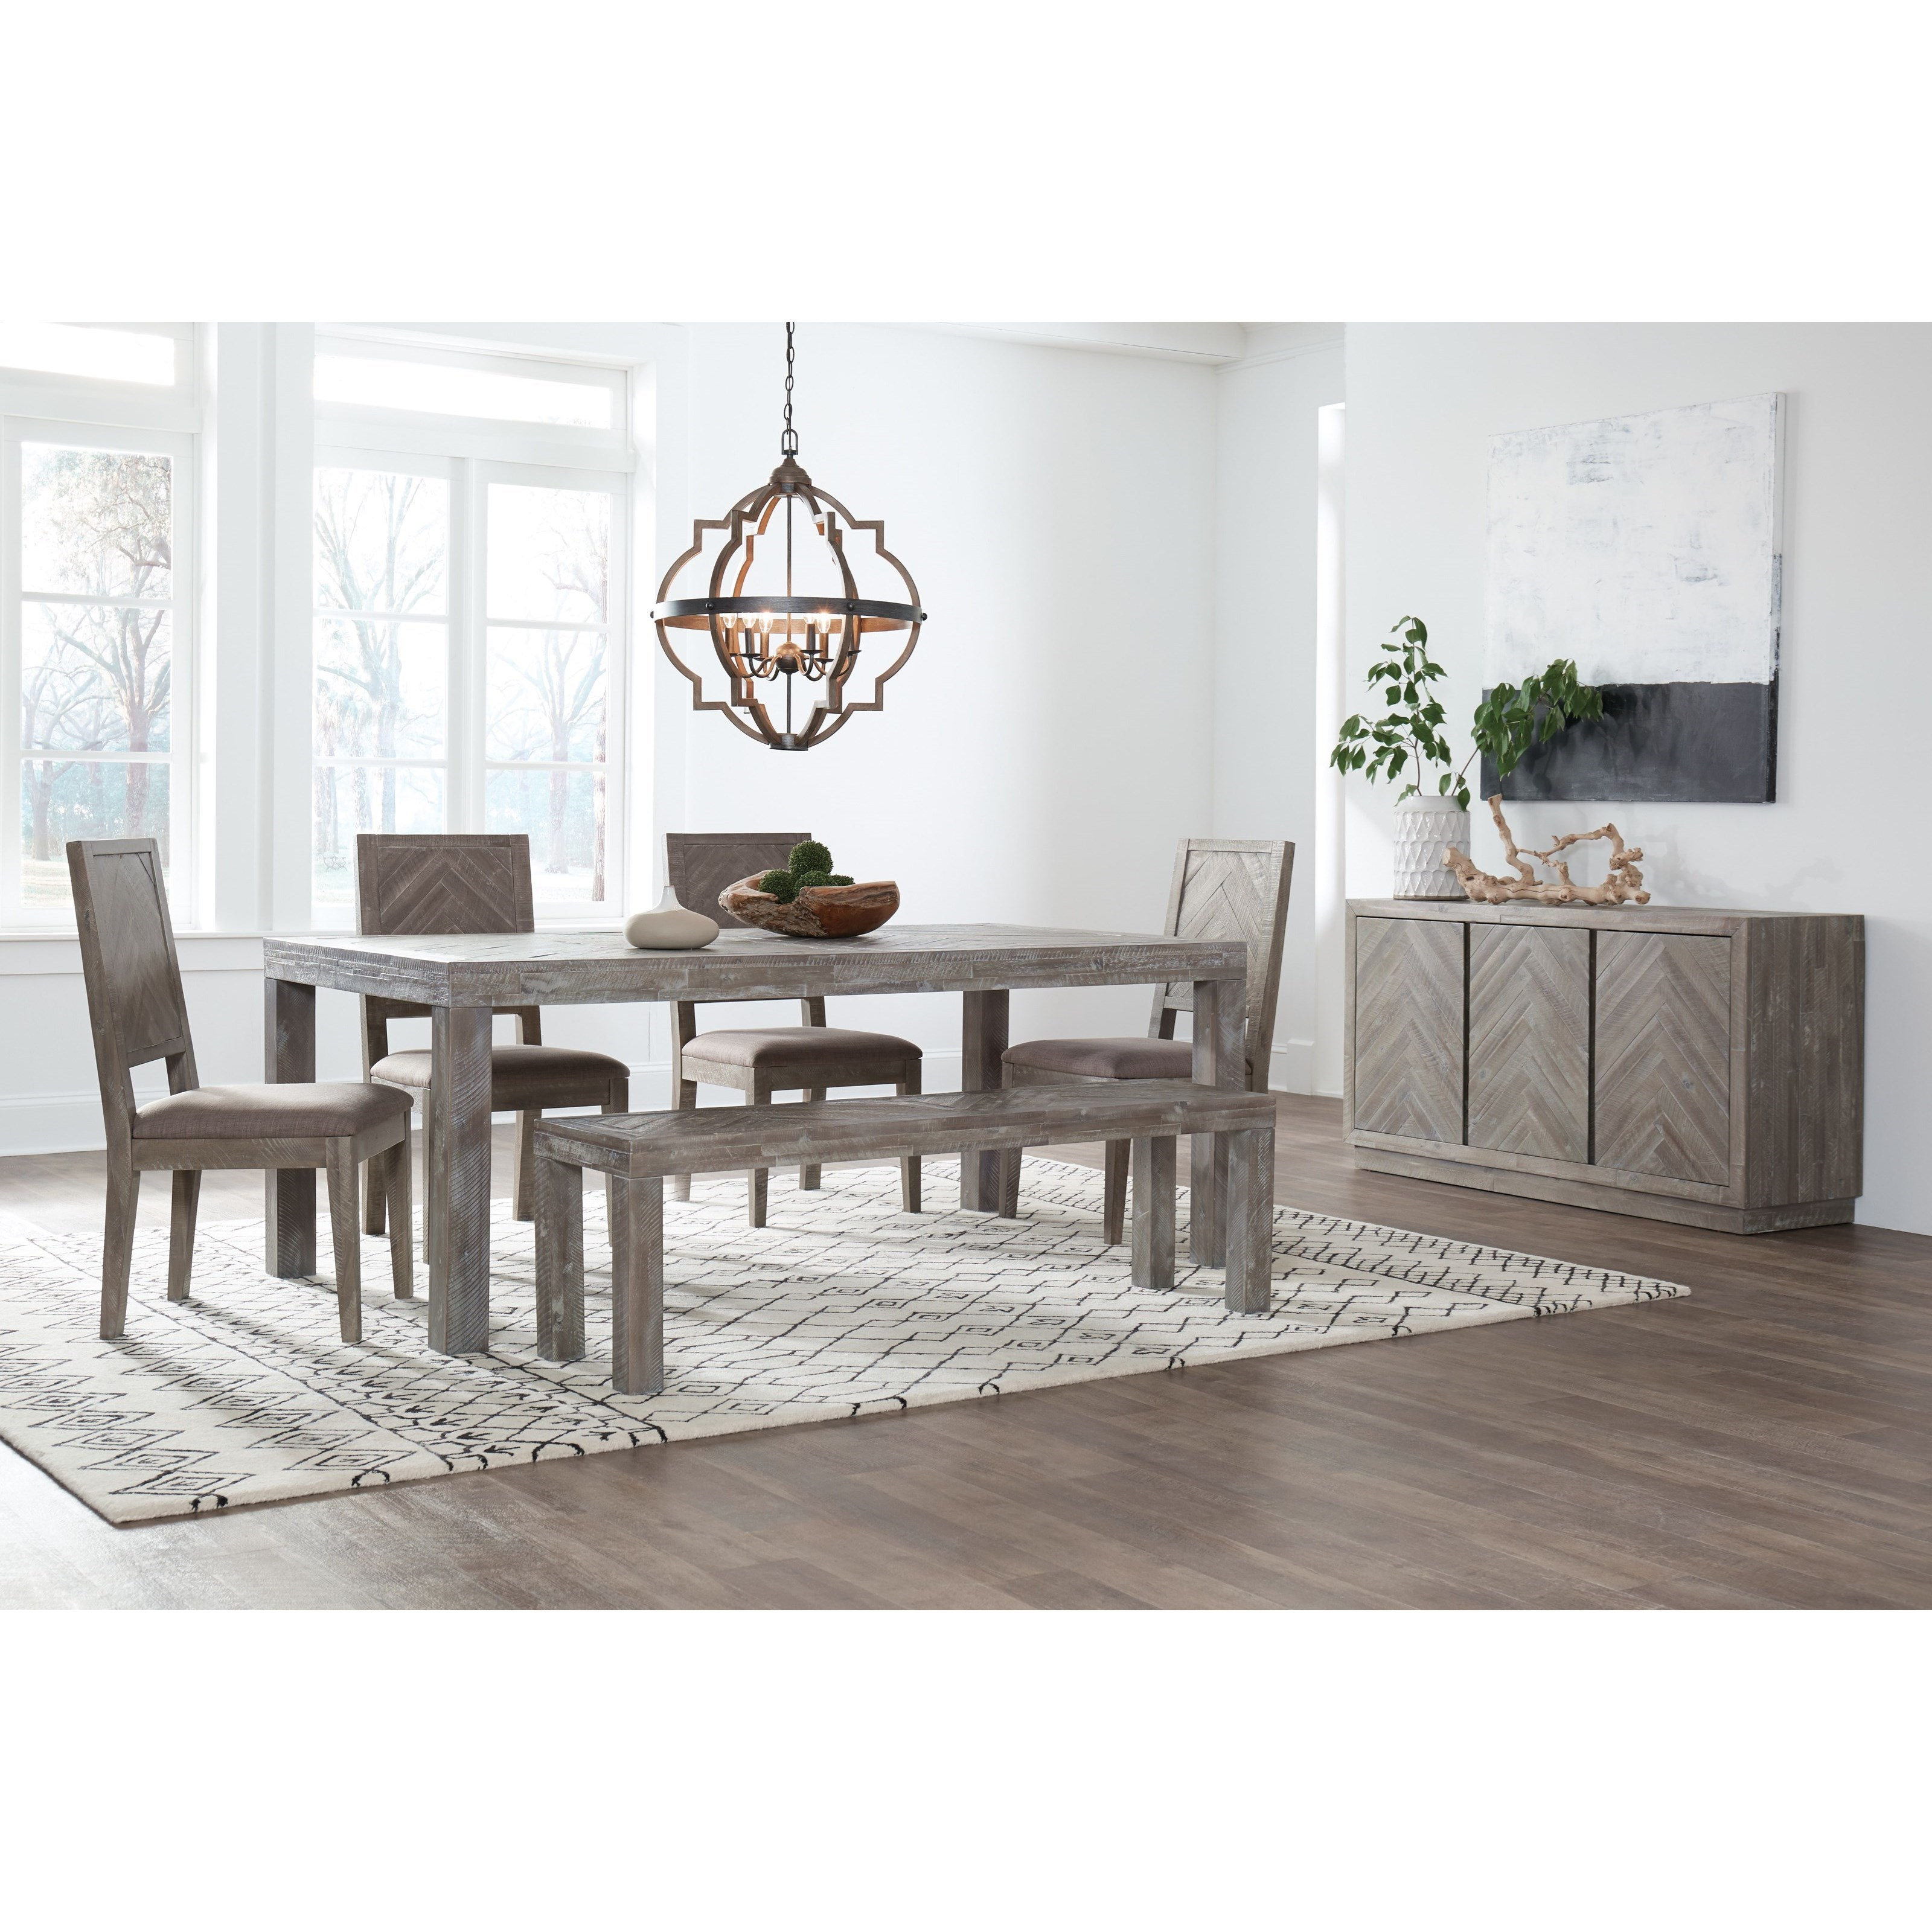 Herringbone Formal Dining Room Group by Modus International at A1 Furniture & Mattress